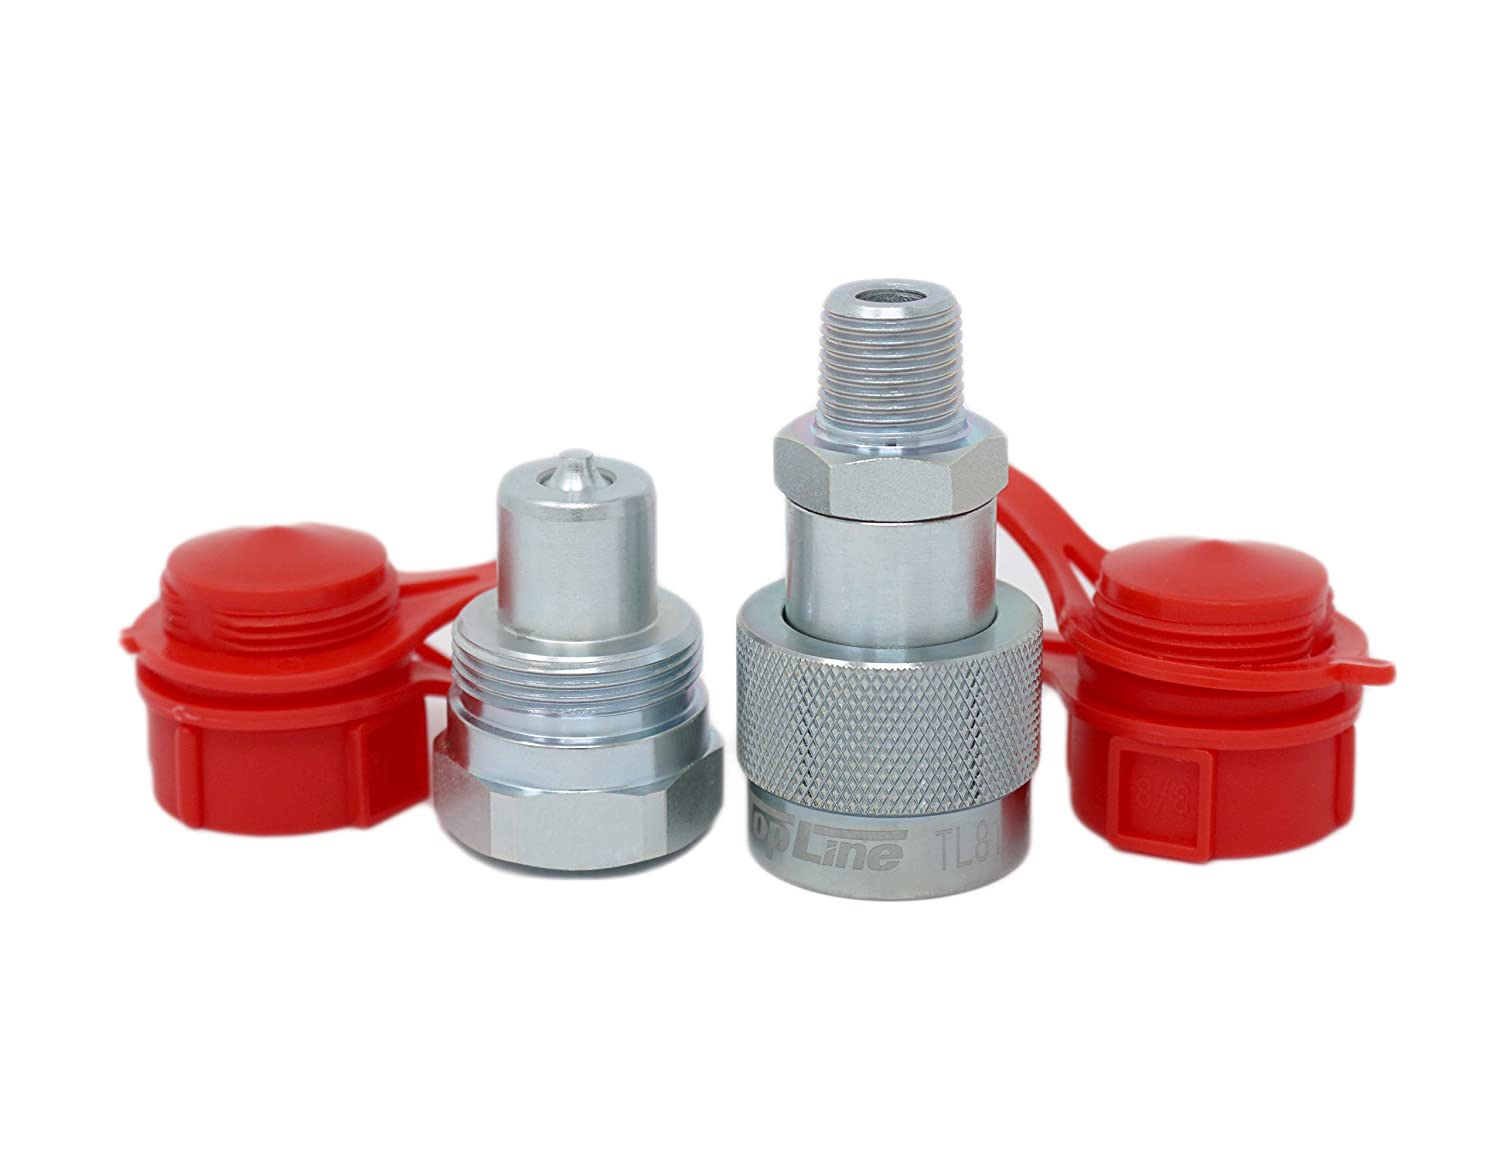 TL81 3/8' NPT 10, 000 PSI High Pressure Enerpac Interchange Hydraulic Couplers Coupling Set 3/8' Body w/Dust Caps 000 PSI High Pressure Enerpac Interchange Hydraulic Couplers Coupling Set 3/8 Body w/Dust Caps TopLine